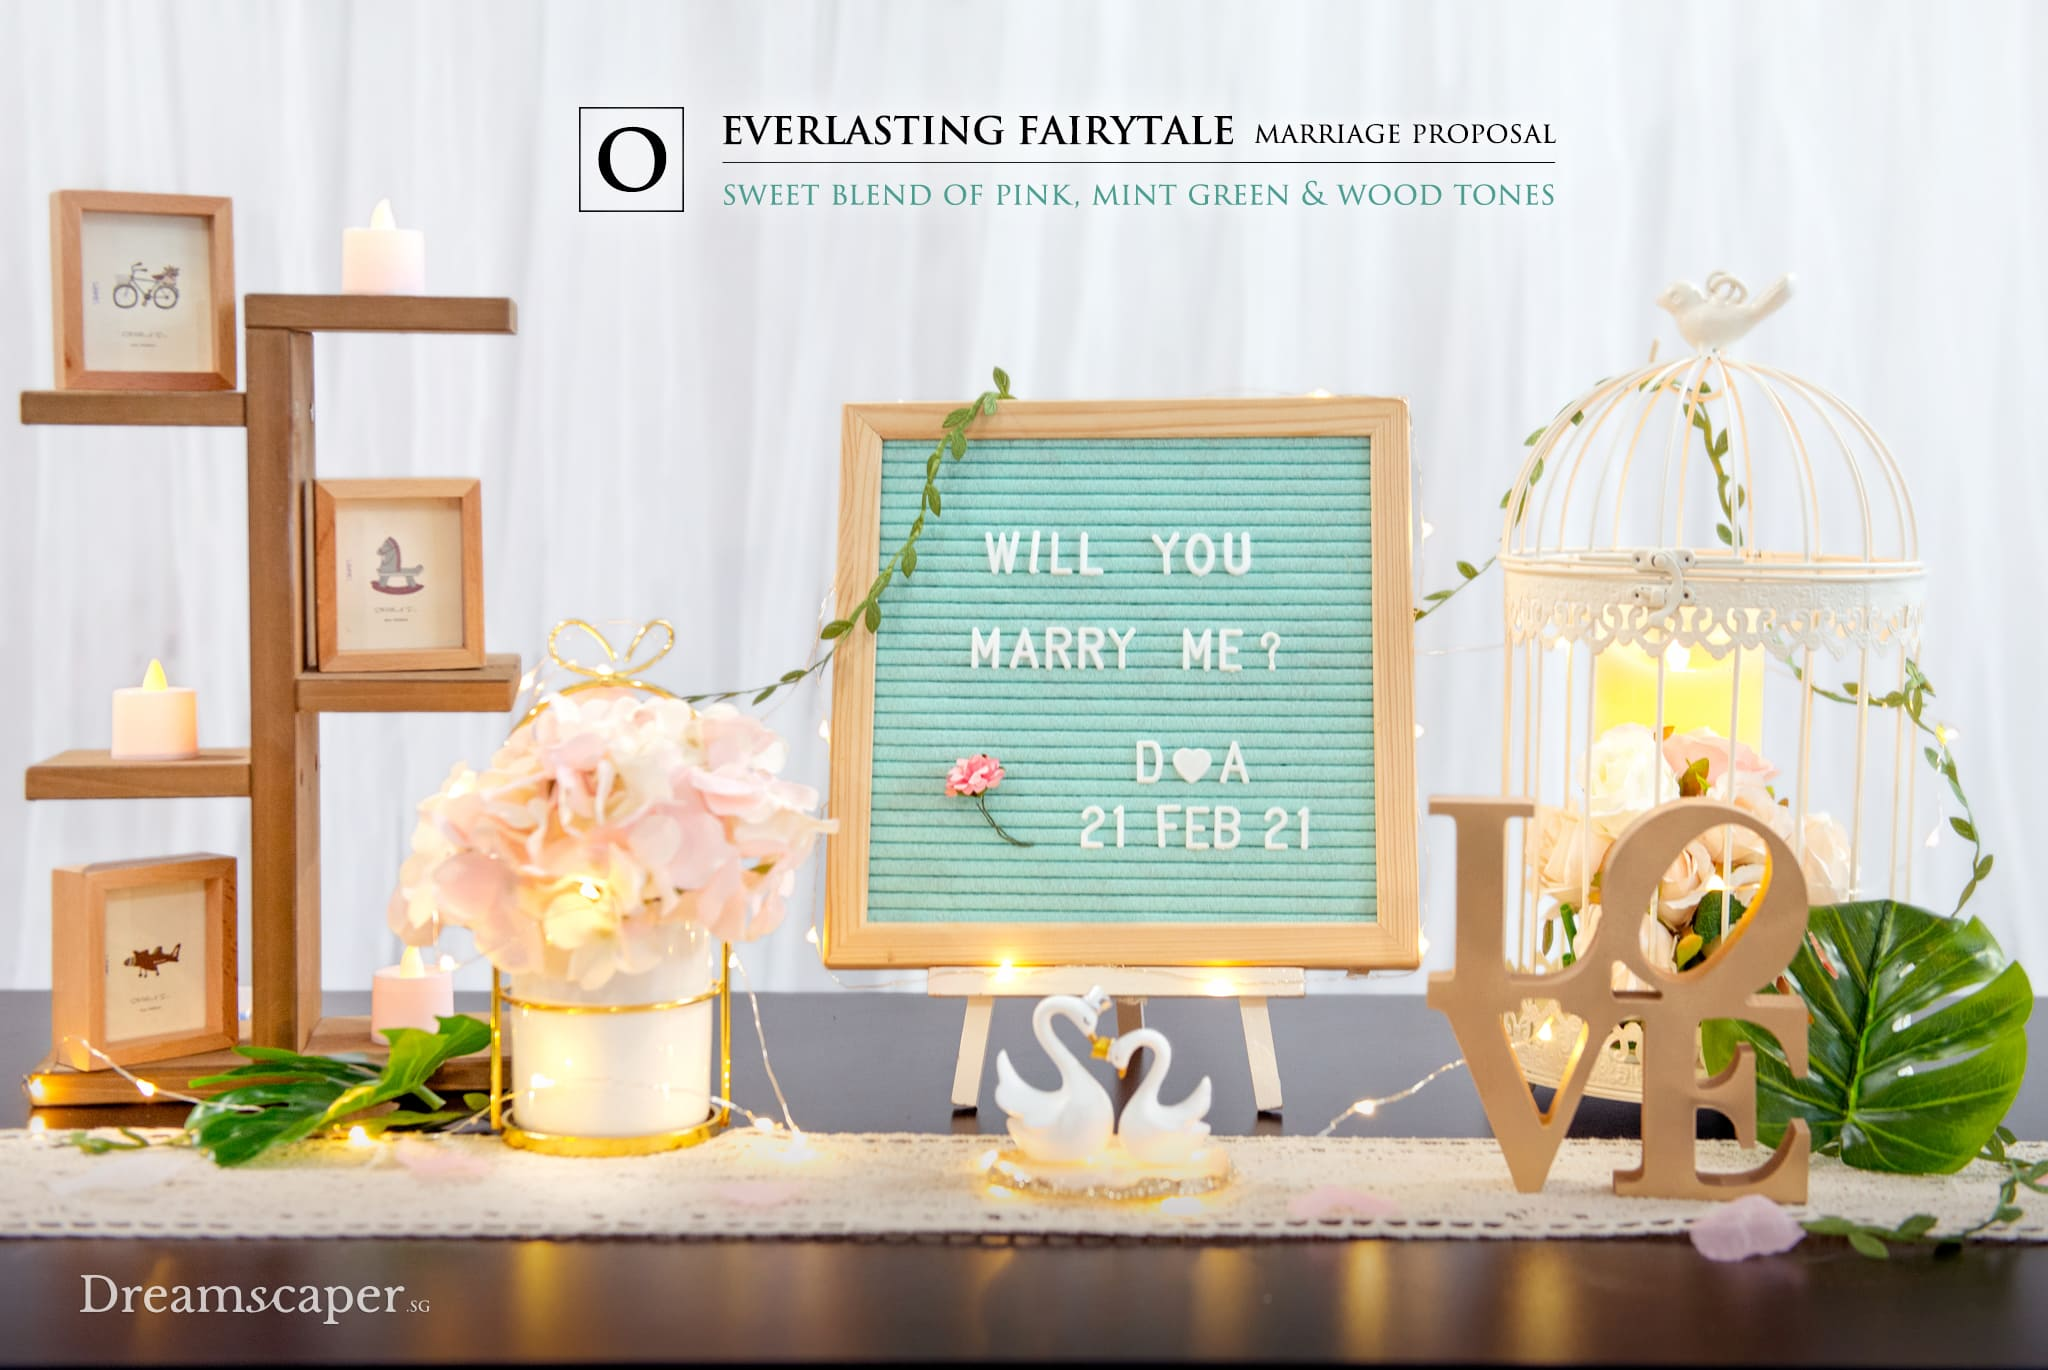 Singapore Marriage Proposal Package - Everlasting Fairytale